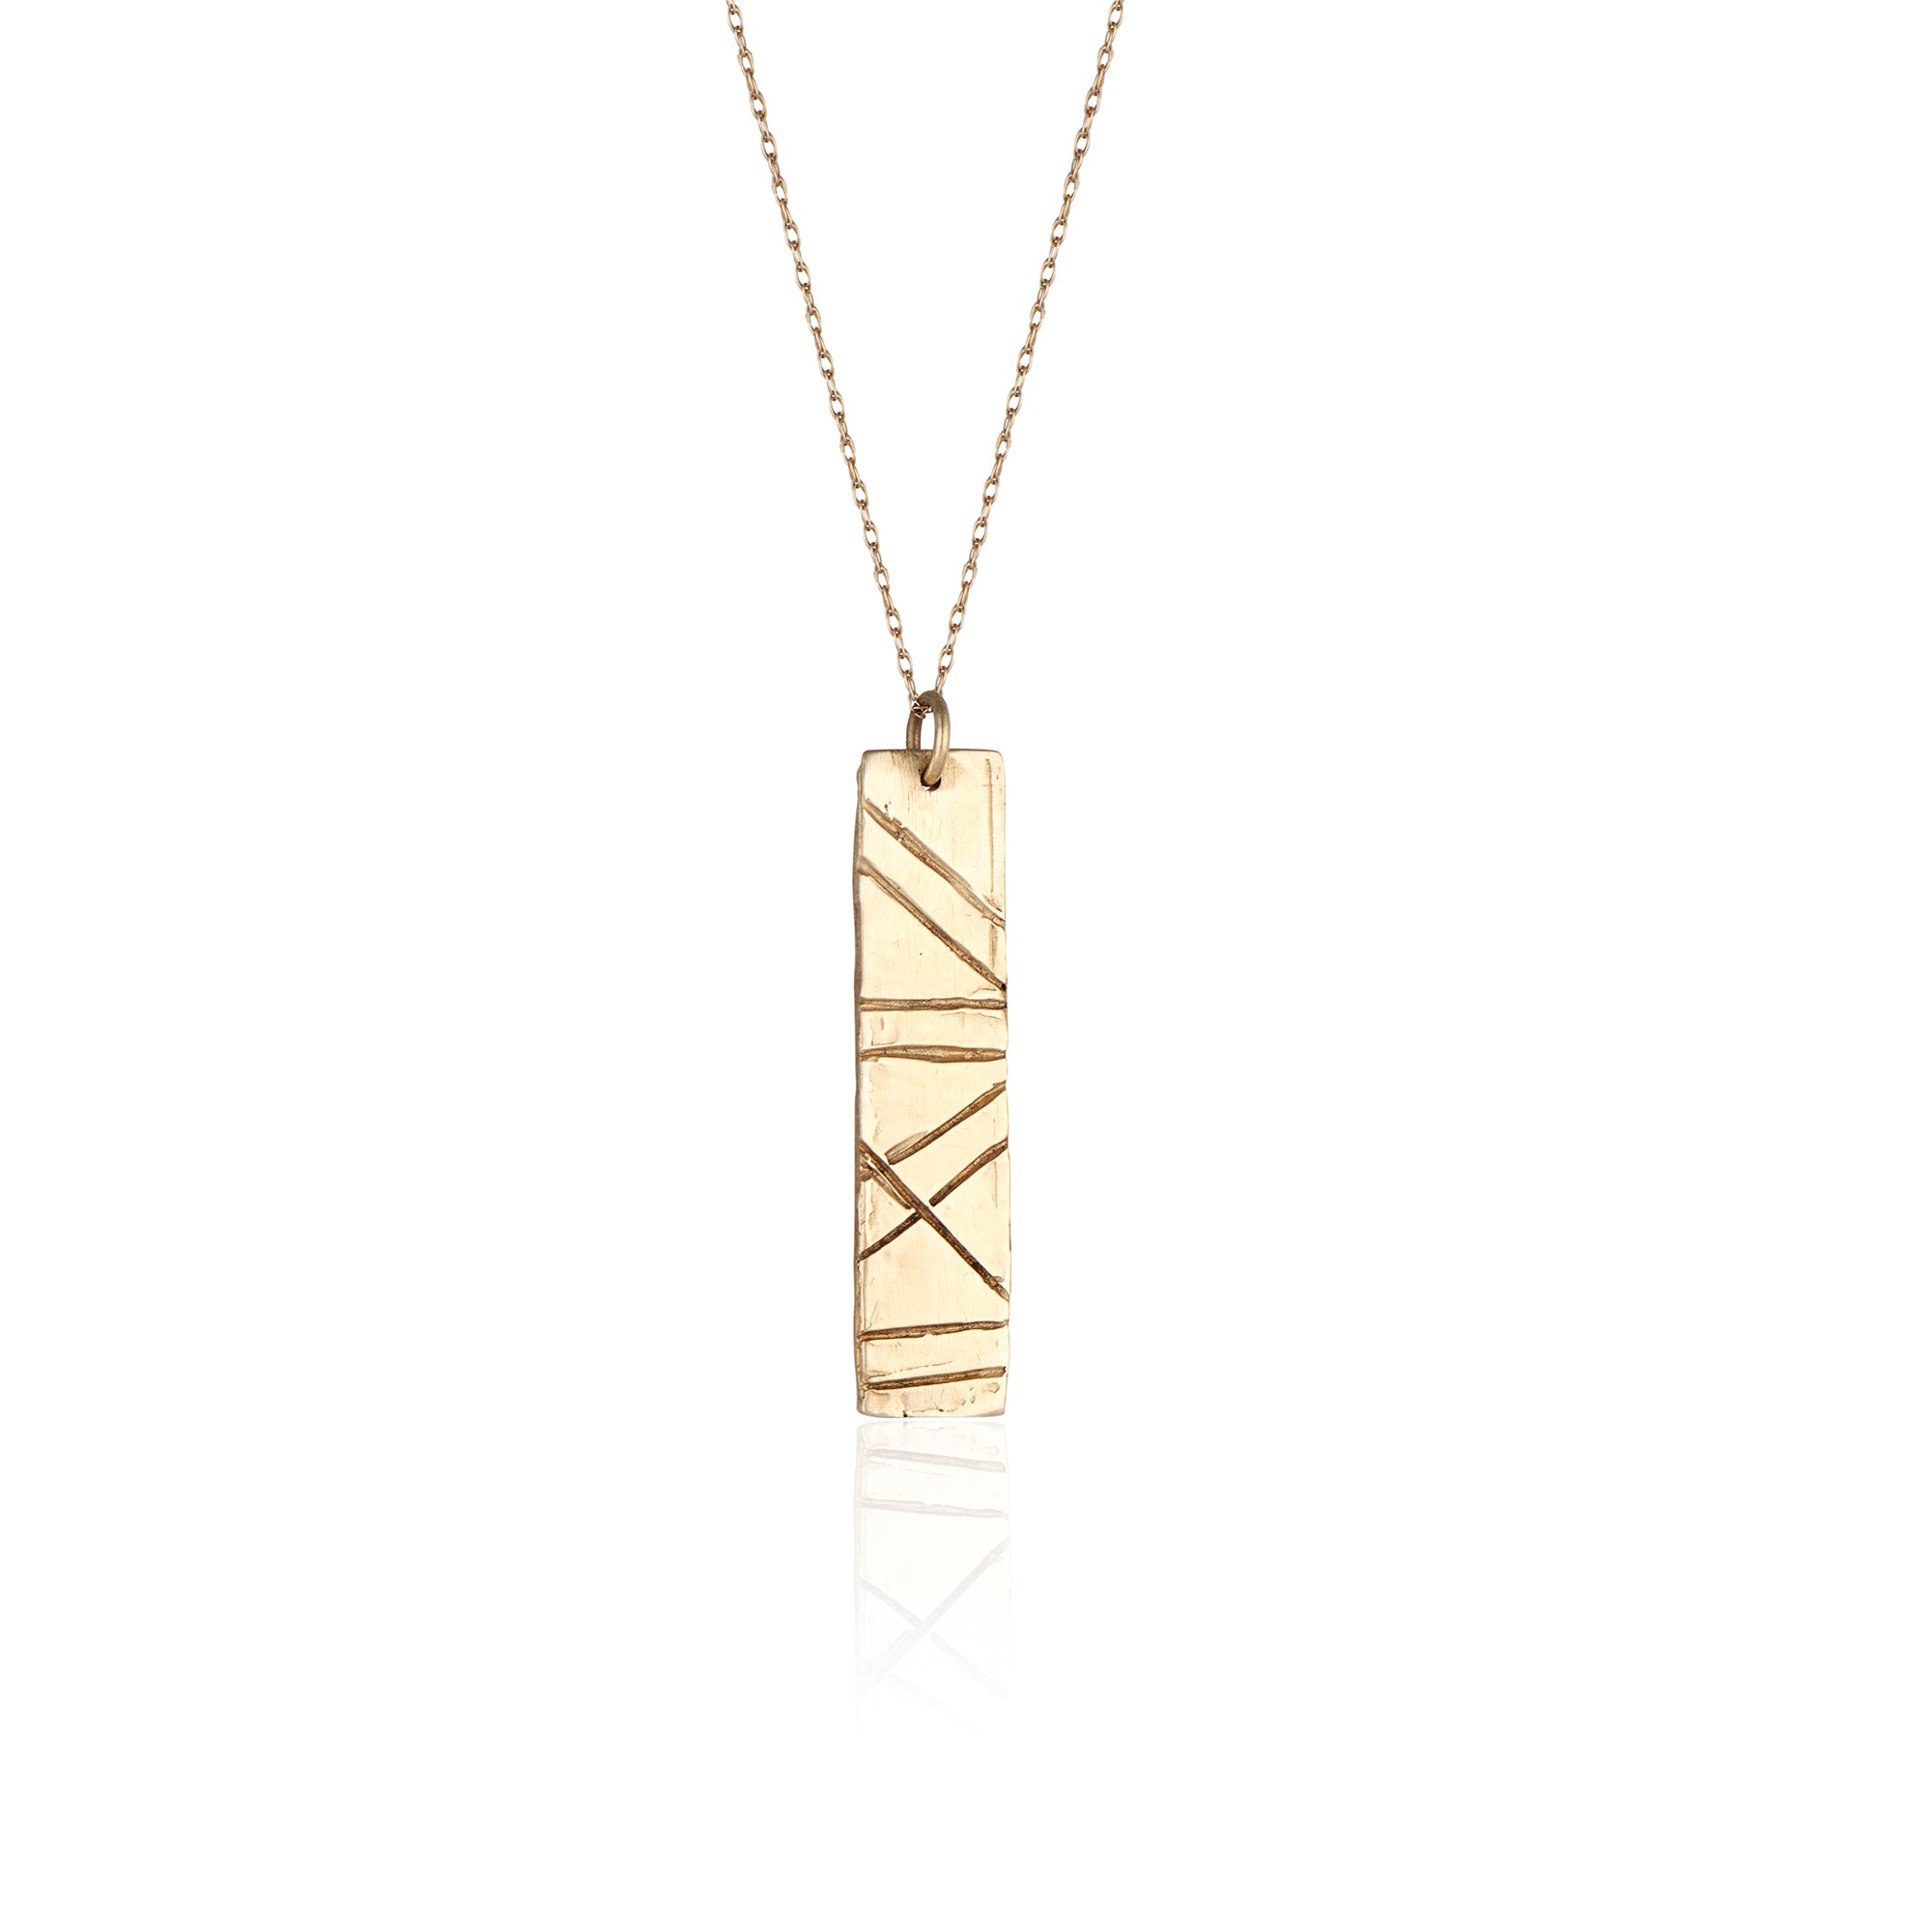 "Everyone needs a simple bar necklace, and the Alison necklace is an absolute staple! Handmade in LA by Natalie McMillan from start to finish in solid 14k gold with a 20"" fine gold chain."